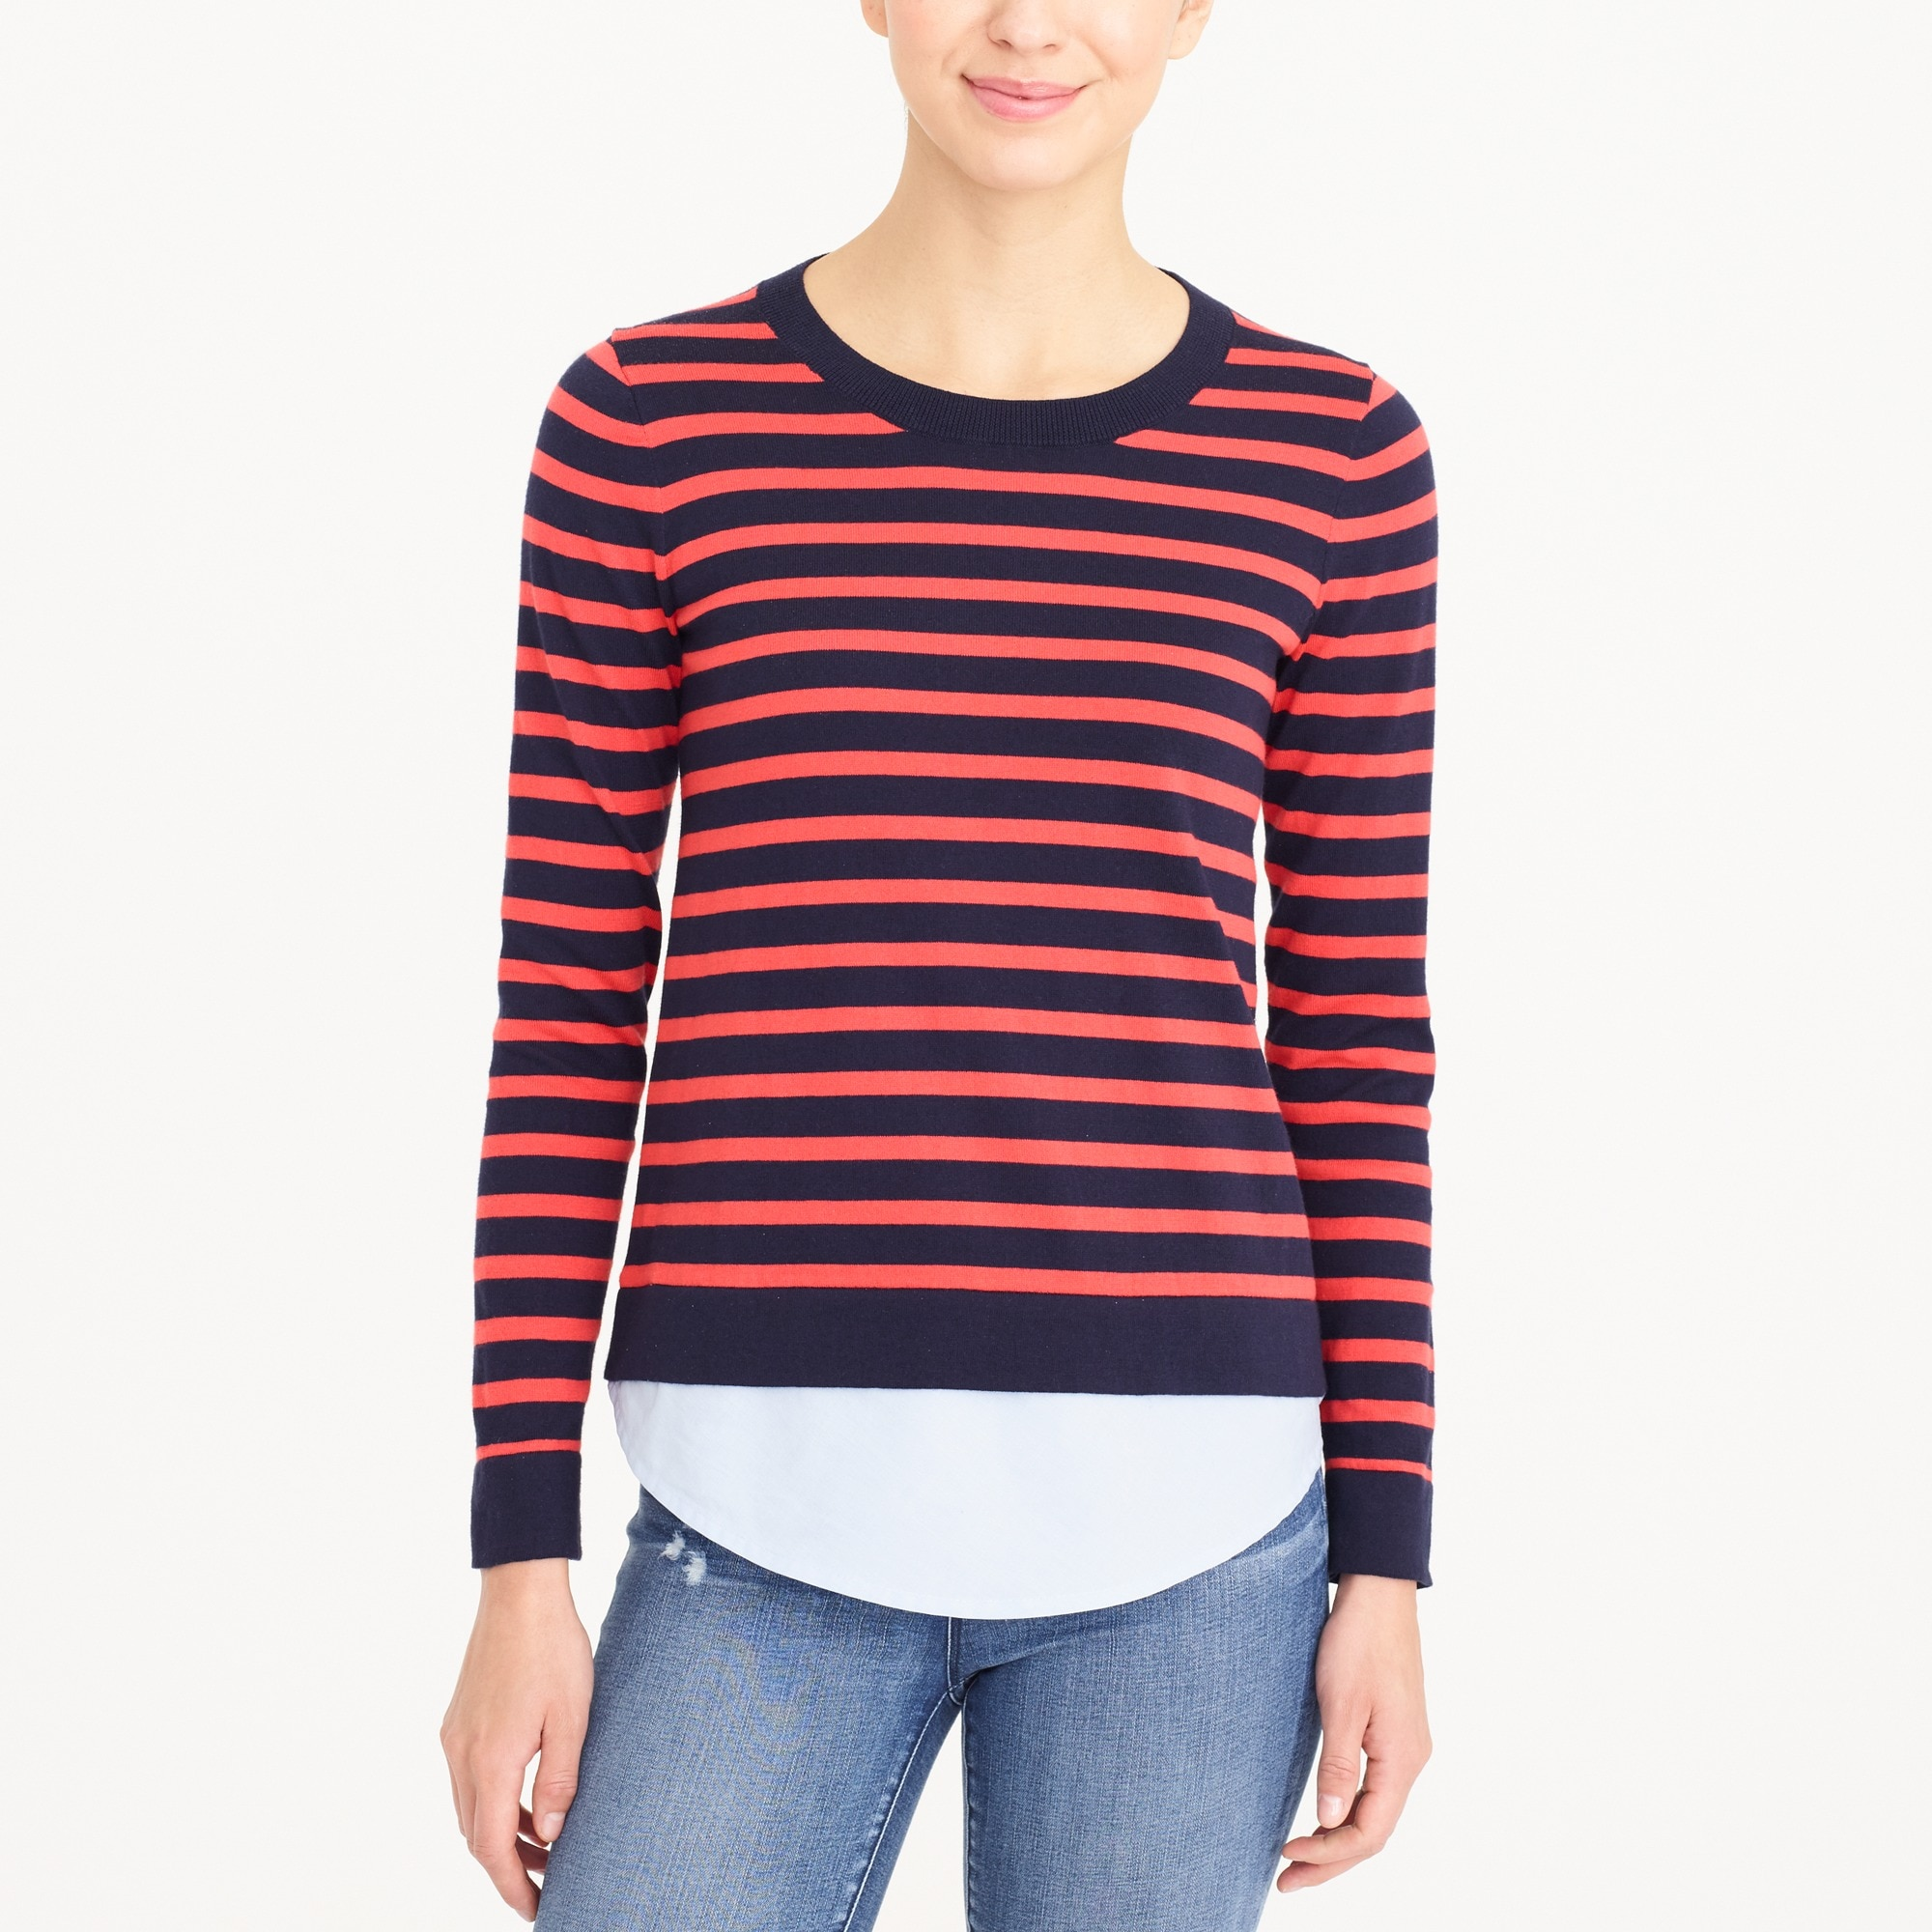 Striped sweater with woven hem factorywomen new arrivals c